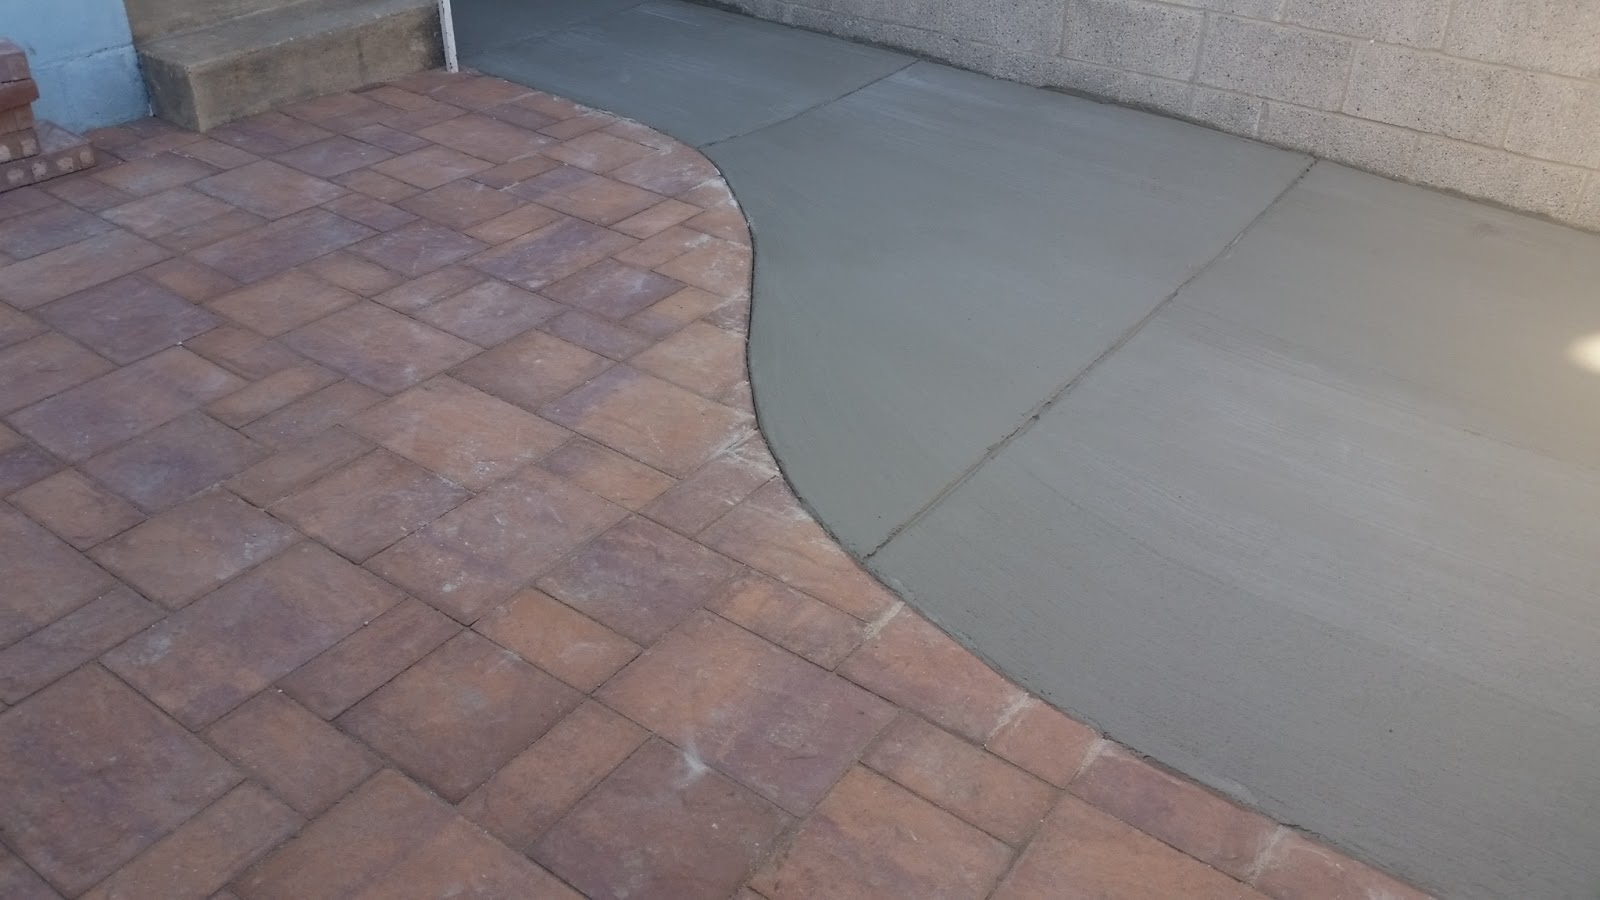 Merveilleux Concrete And Paver Patio Combination. The Pavers Are Cambridge Ledgestone  In The Chesnut Bronze Color. This Job Is In Highlandtown, Balto City.